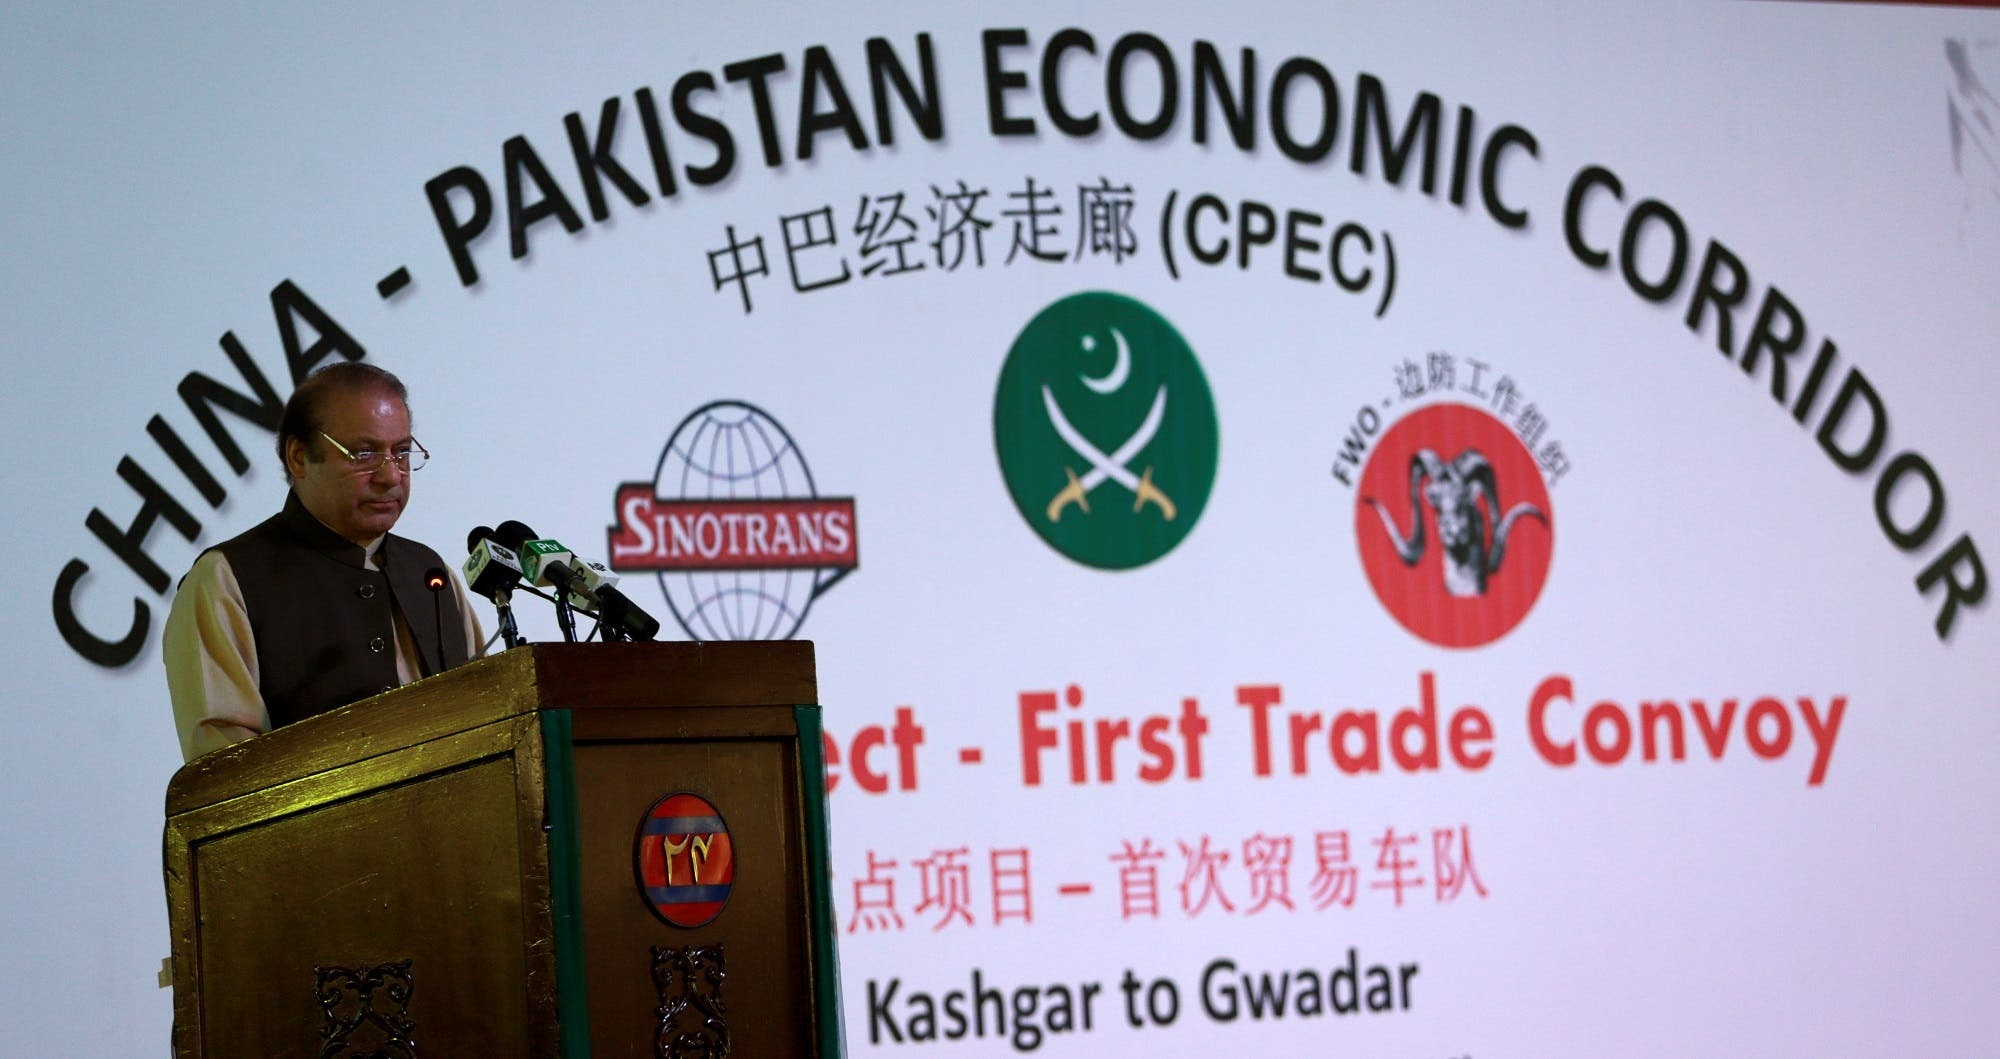 Nawaz Sharif speaks at the inauguration of the China Pakistan Economic Corridor port in Gwadar, Pakistan, on November 13, 2016. (Reuters)